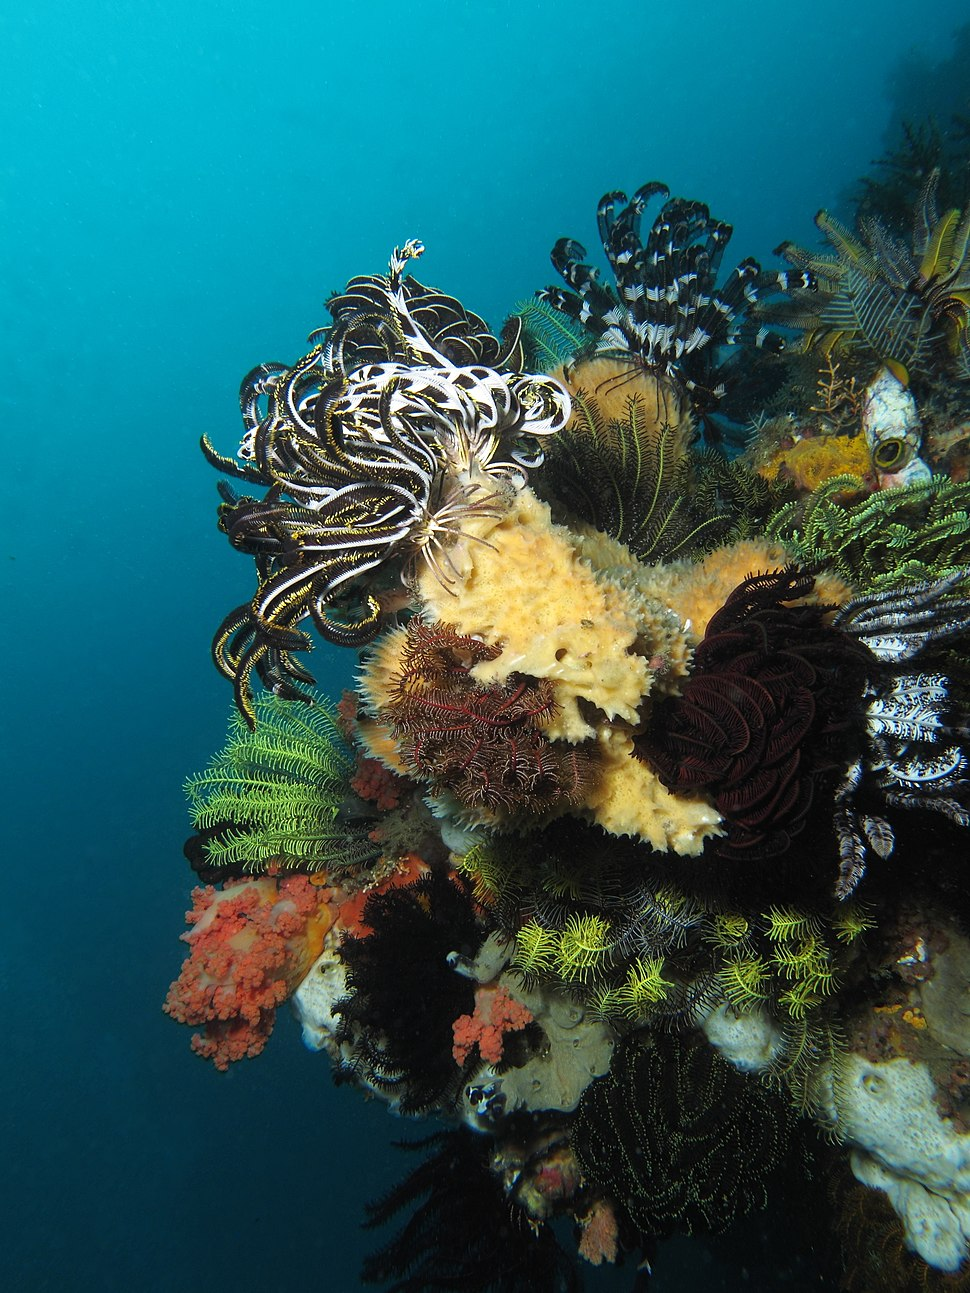 Multiple crinoids occupying the reef of Nusa Kode Island